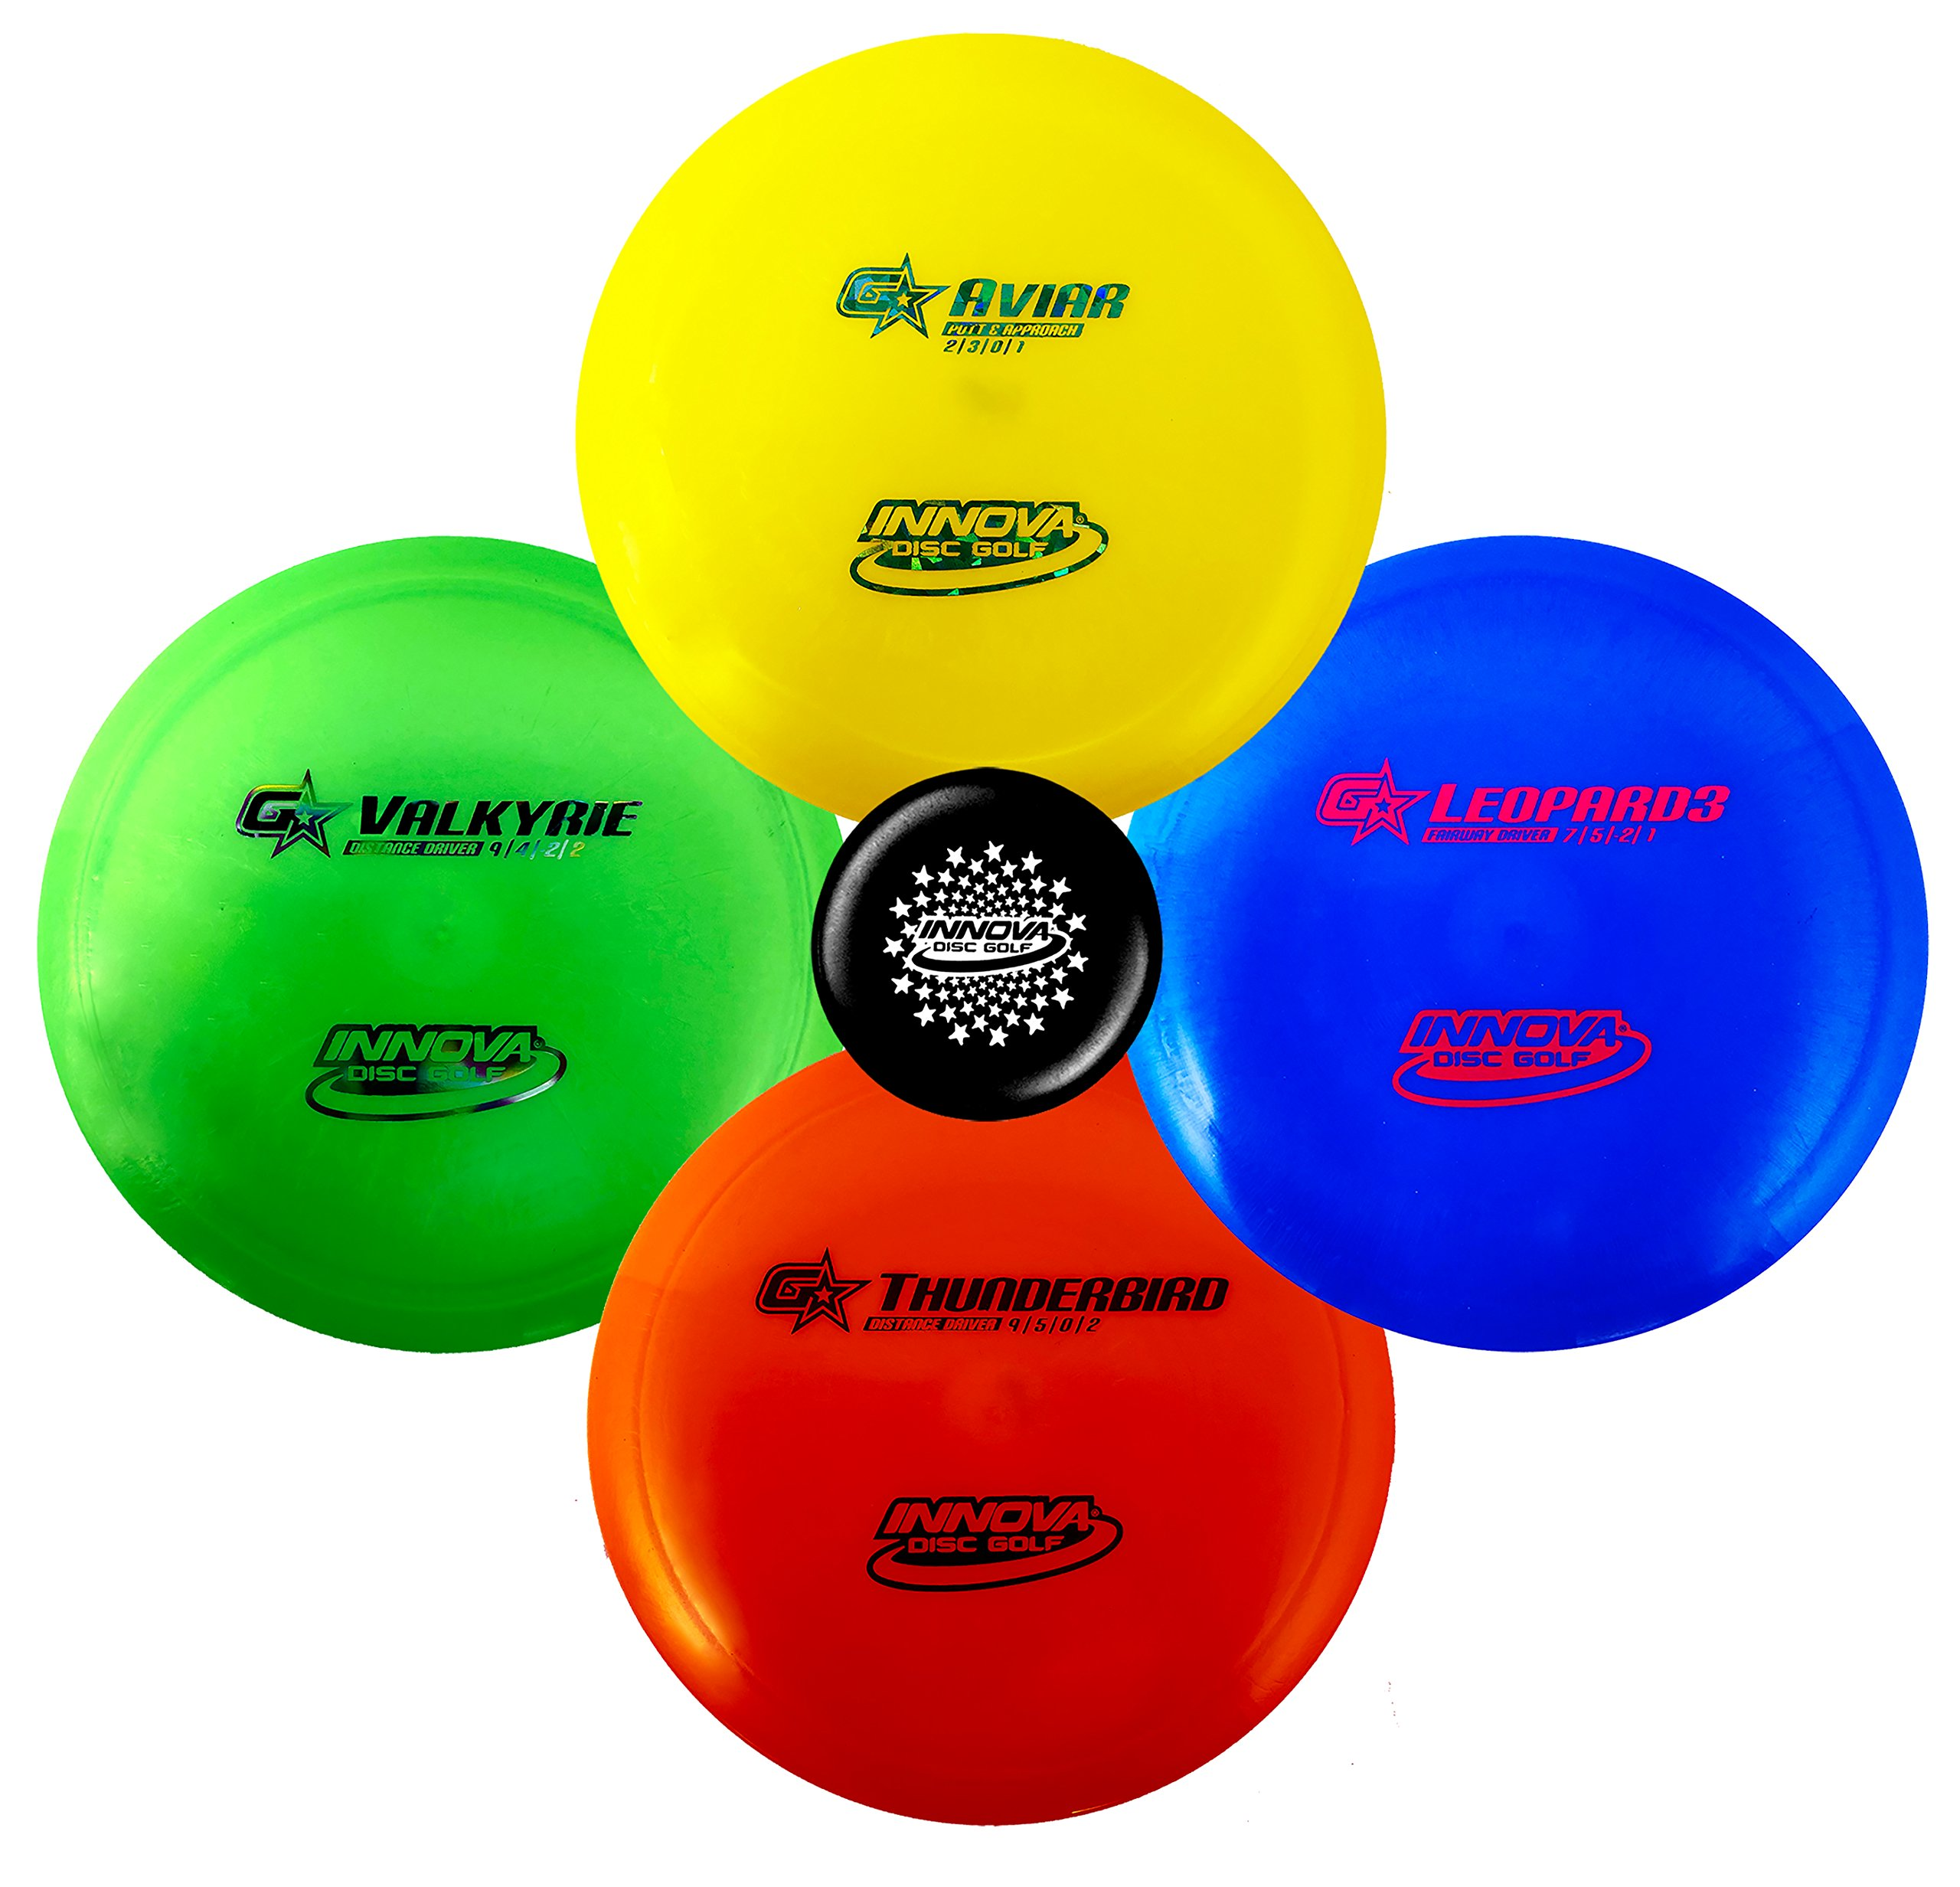 Innova Premium Beginner's Disc Golf Set - GStar Putter, Mid-Range, Driver - Durable, Flexible and Supple Plastic- Colors Will Vary - 150-169g (4 Pack) by Innova Discs